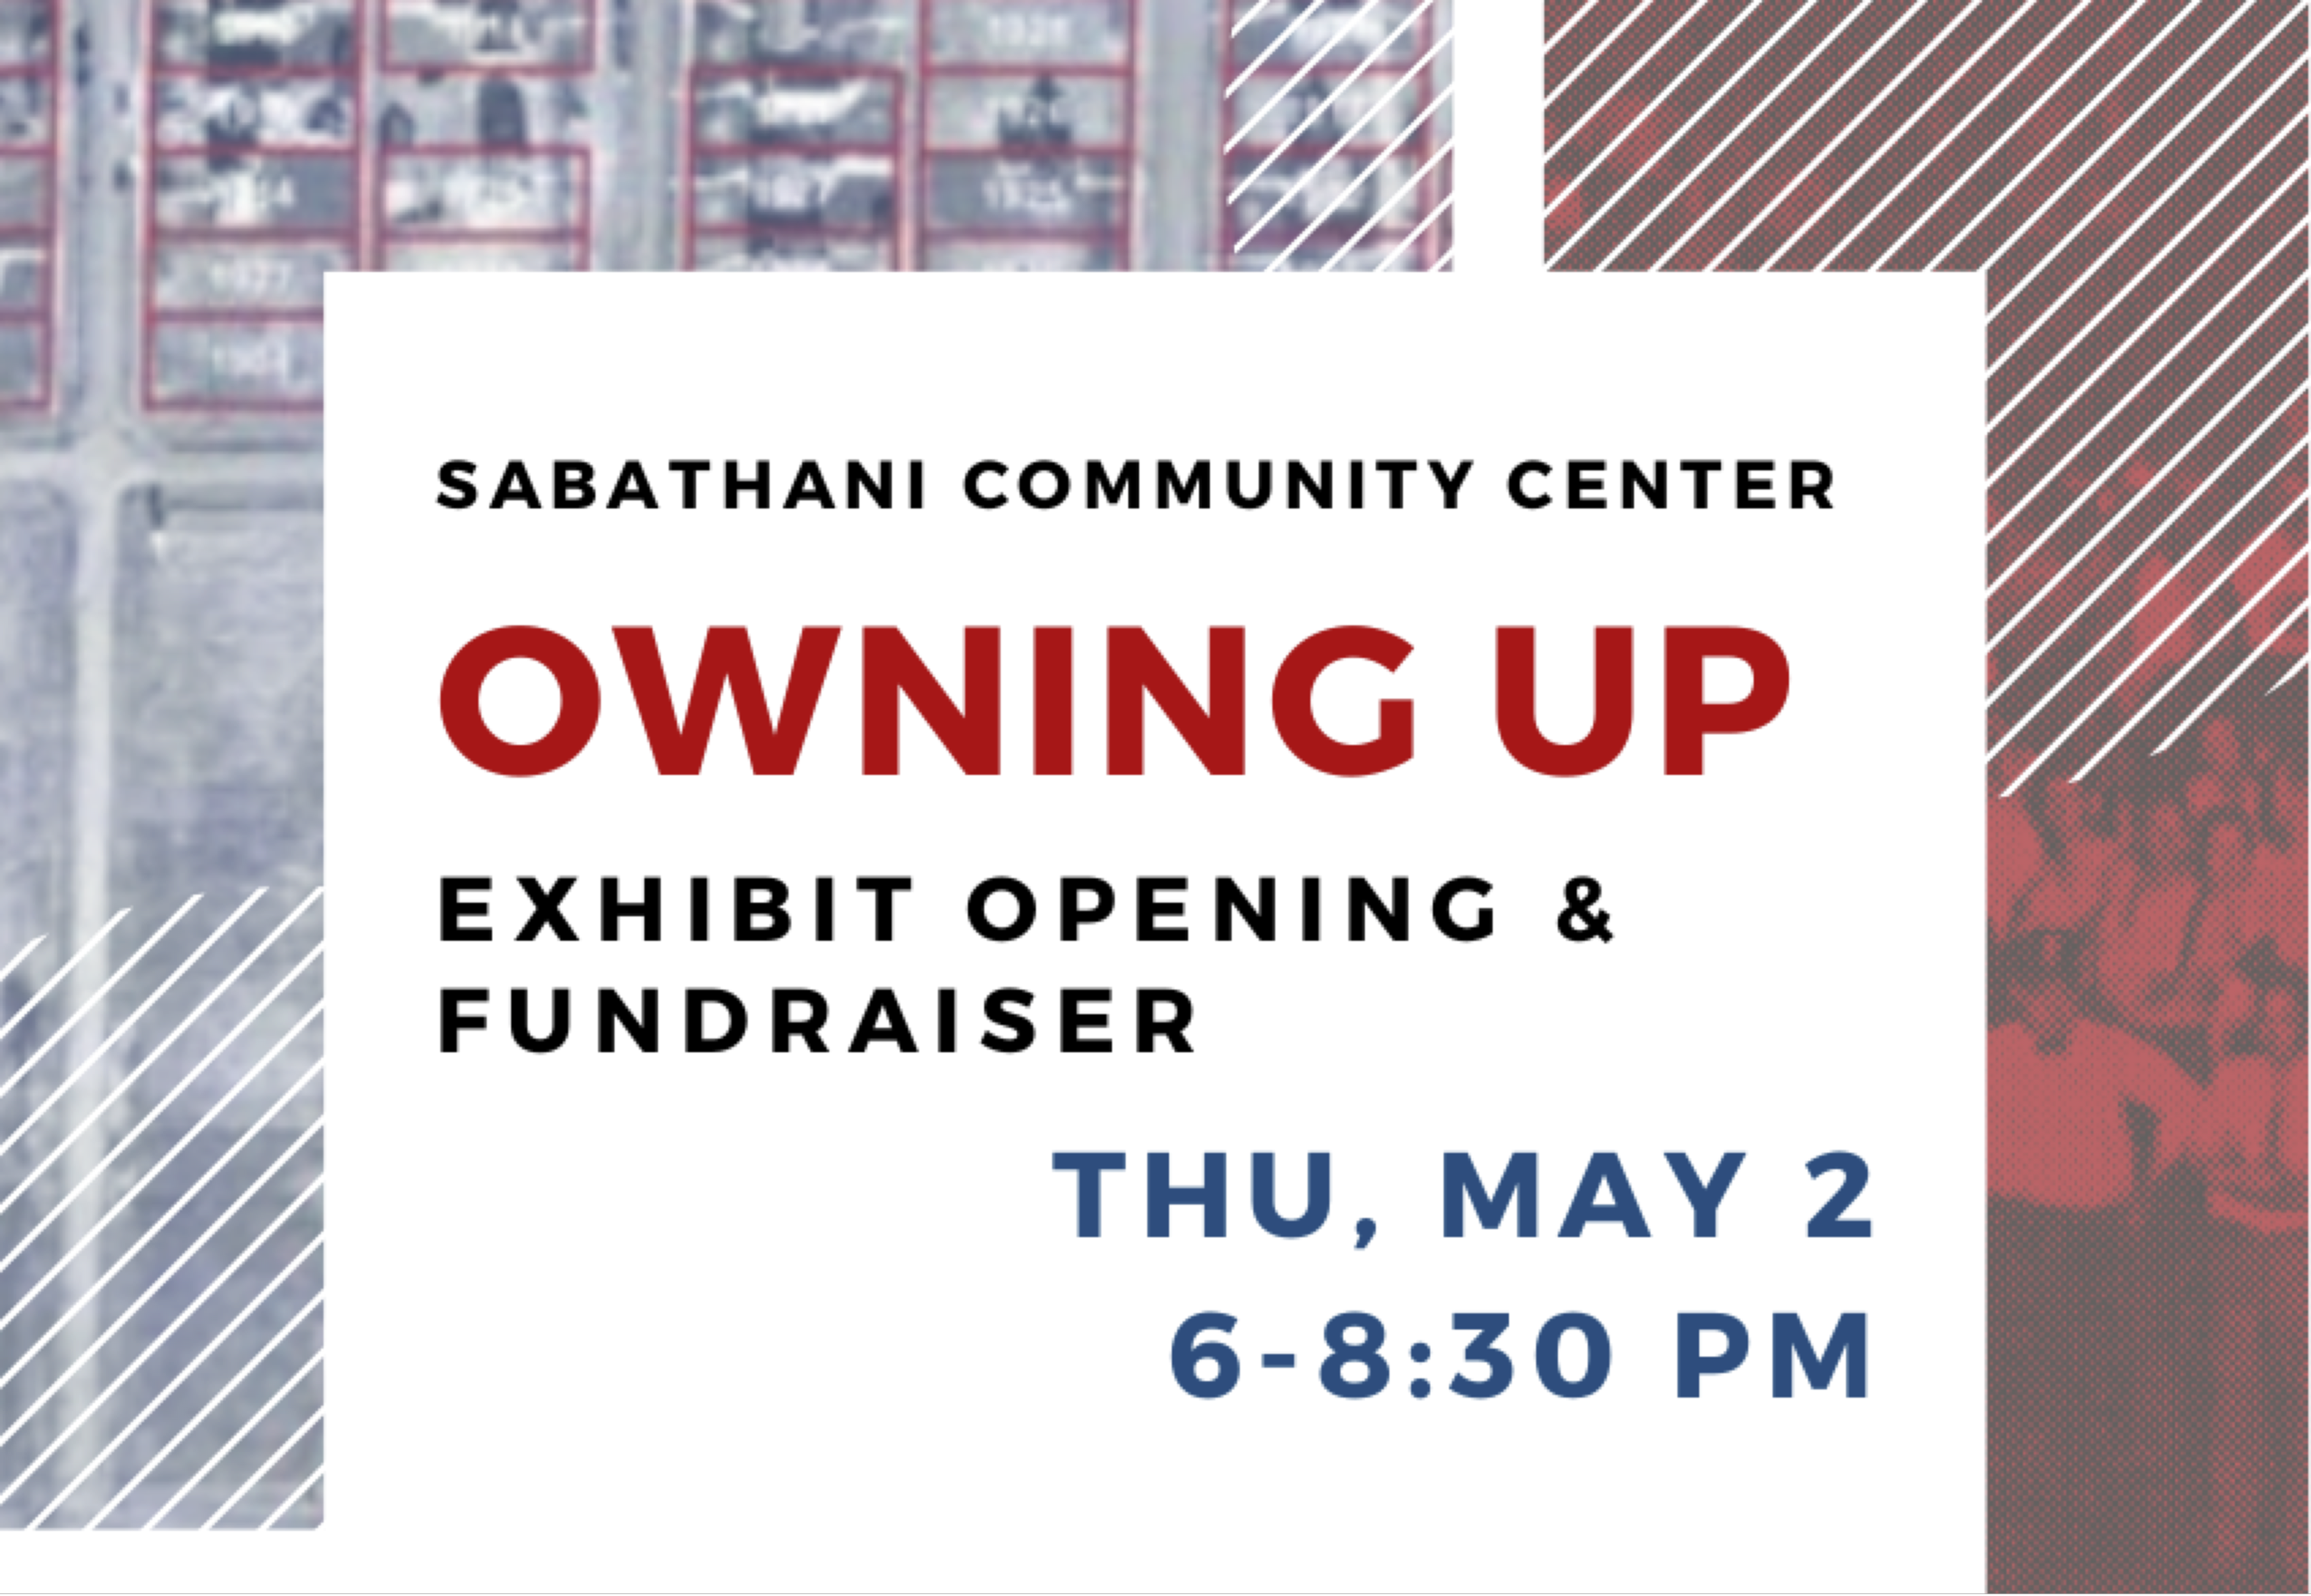 """an event poster for Thursday, May 2 from 6 to 8:30 p.m. called """"Owning Up"""" at the Sabathani Community Center."""